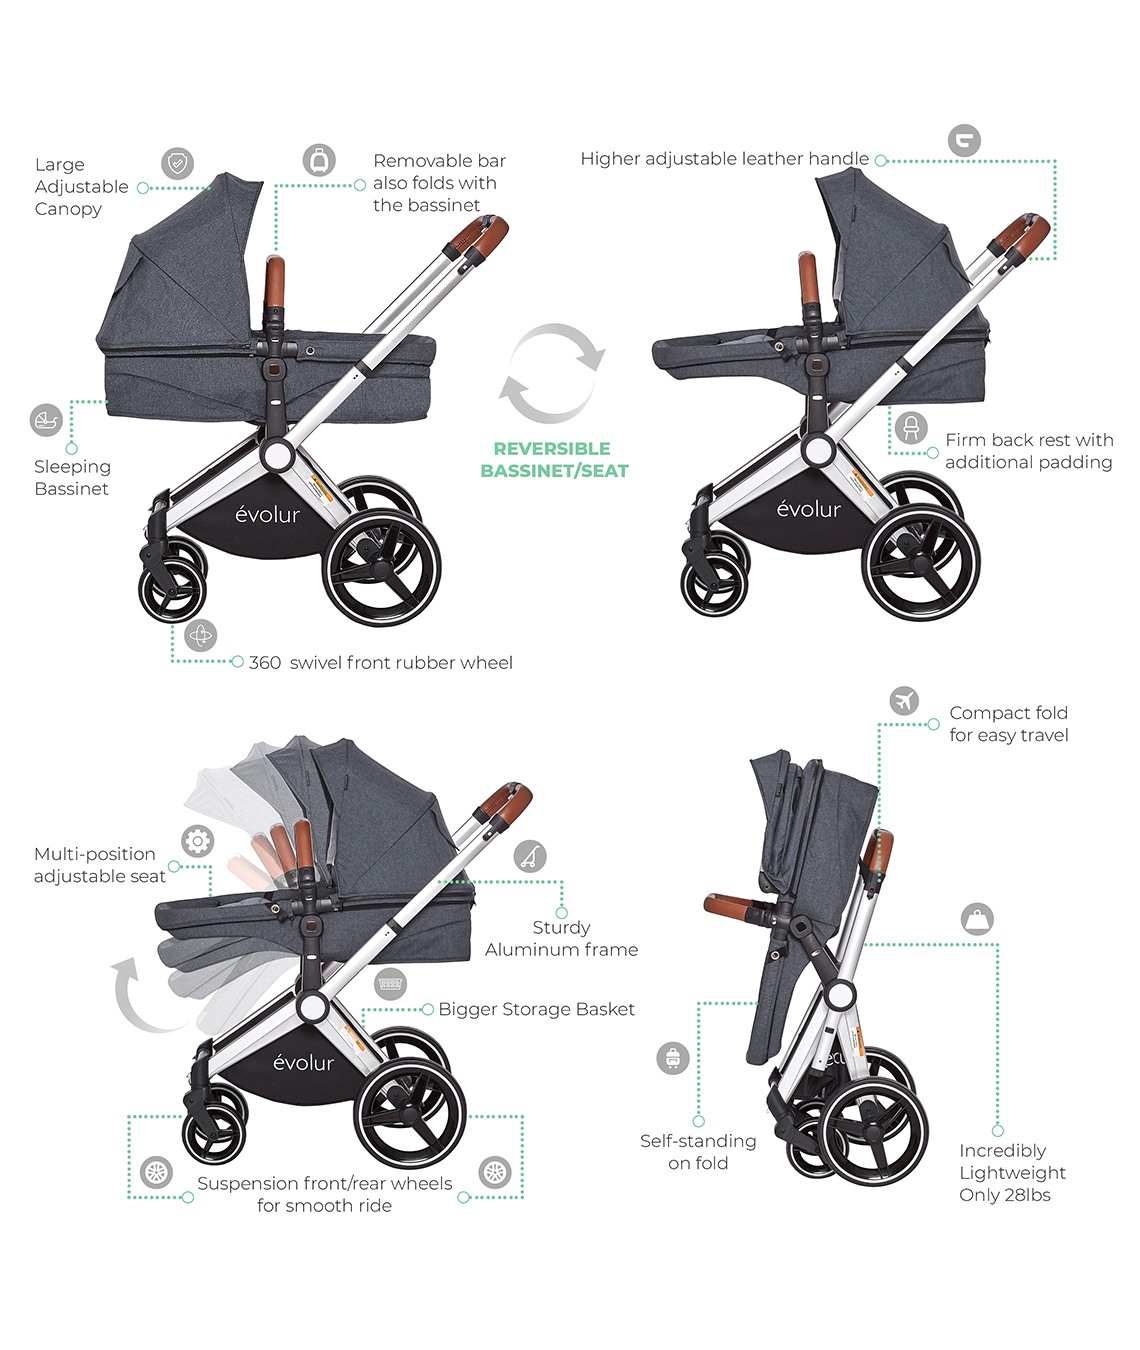 524_GRY_Nova_3-in-1_Stroller_Featured_Image